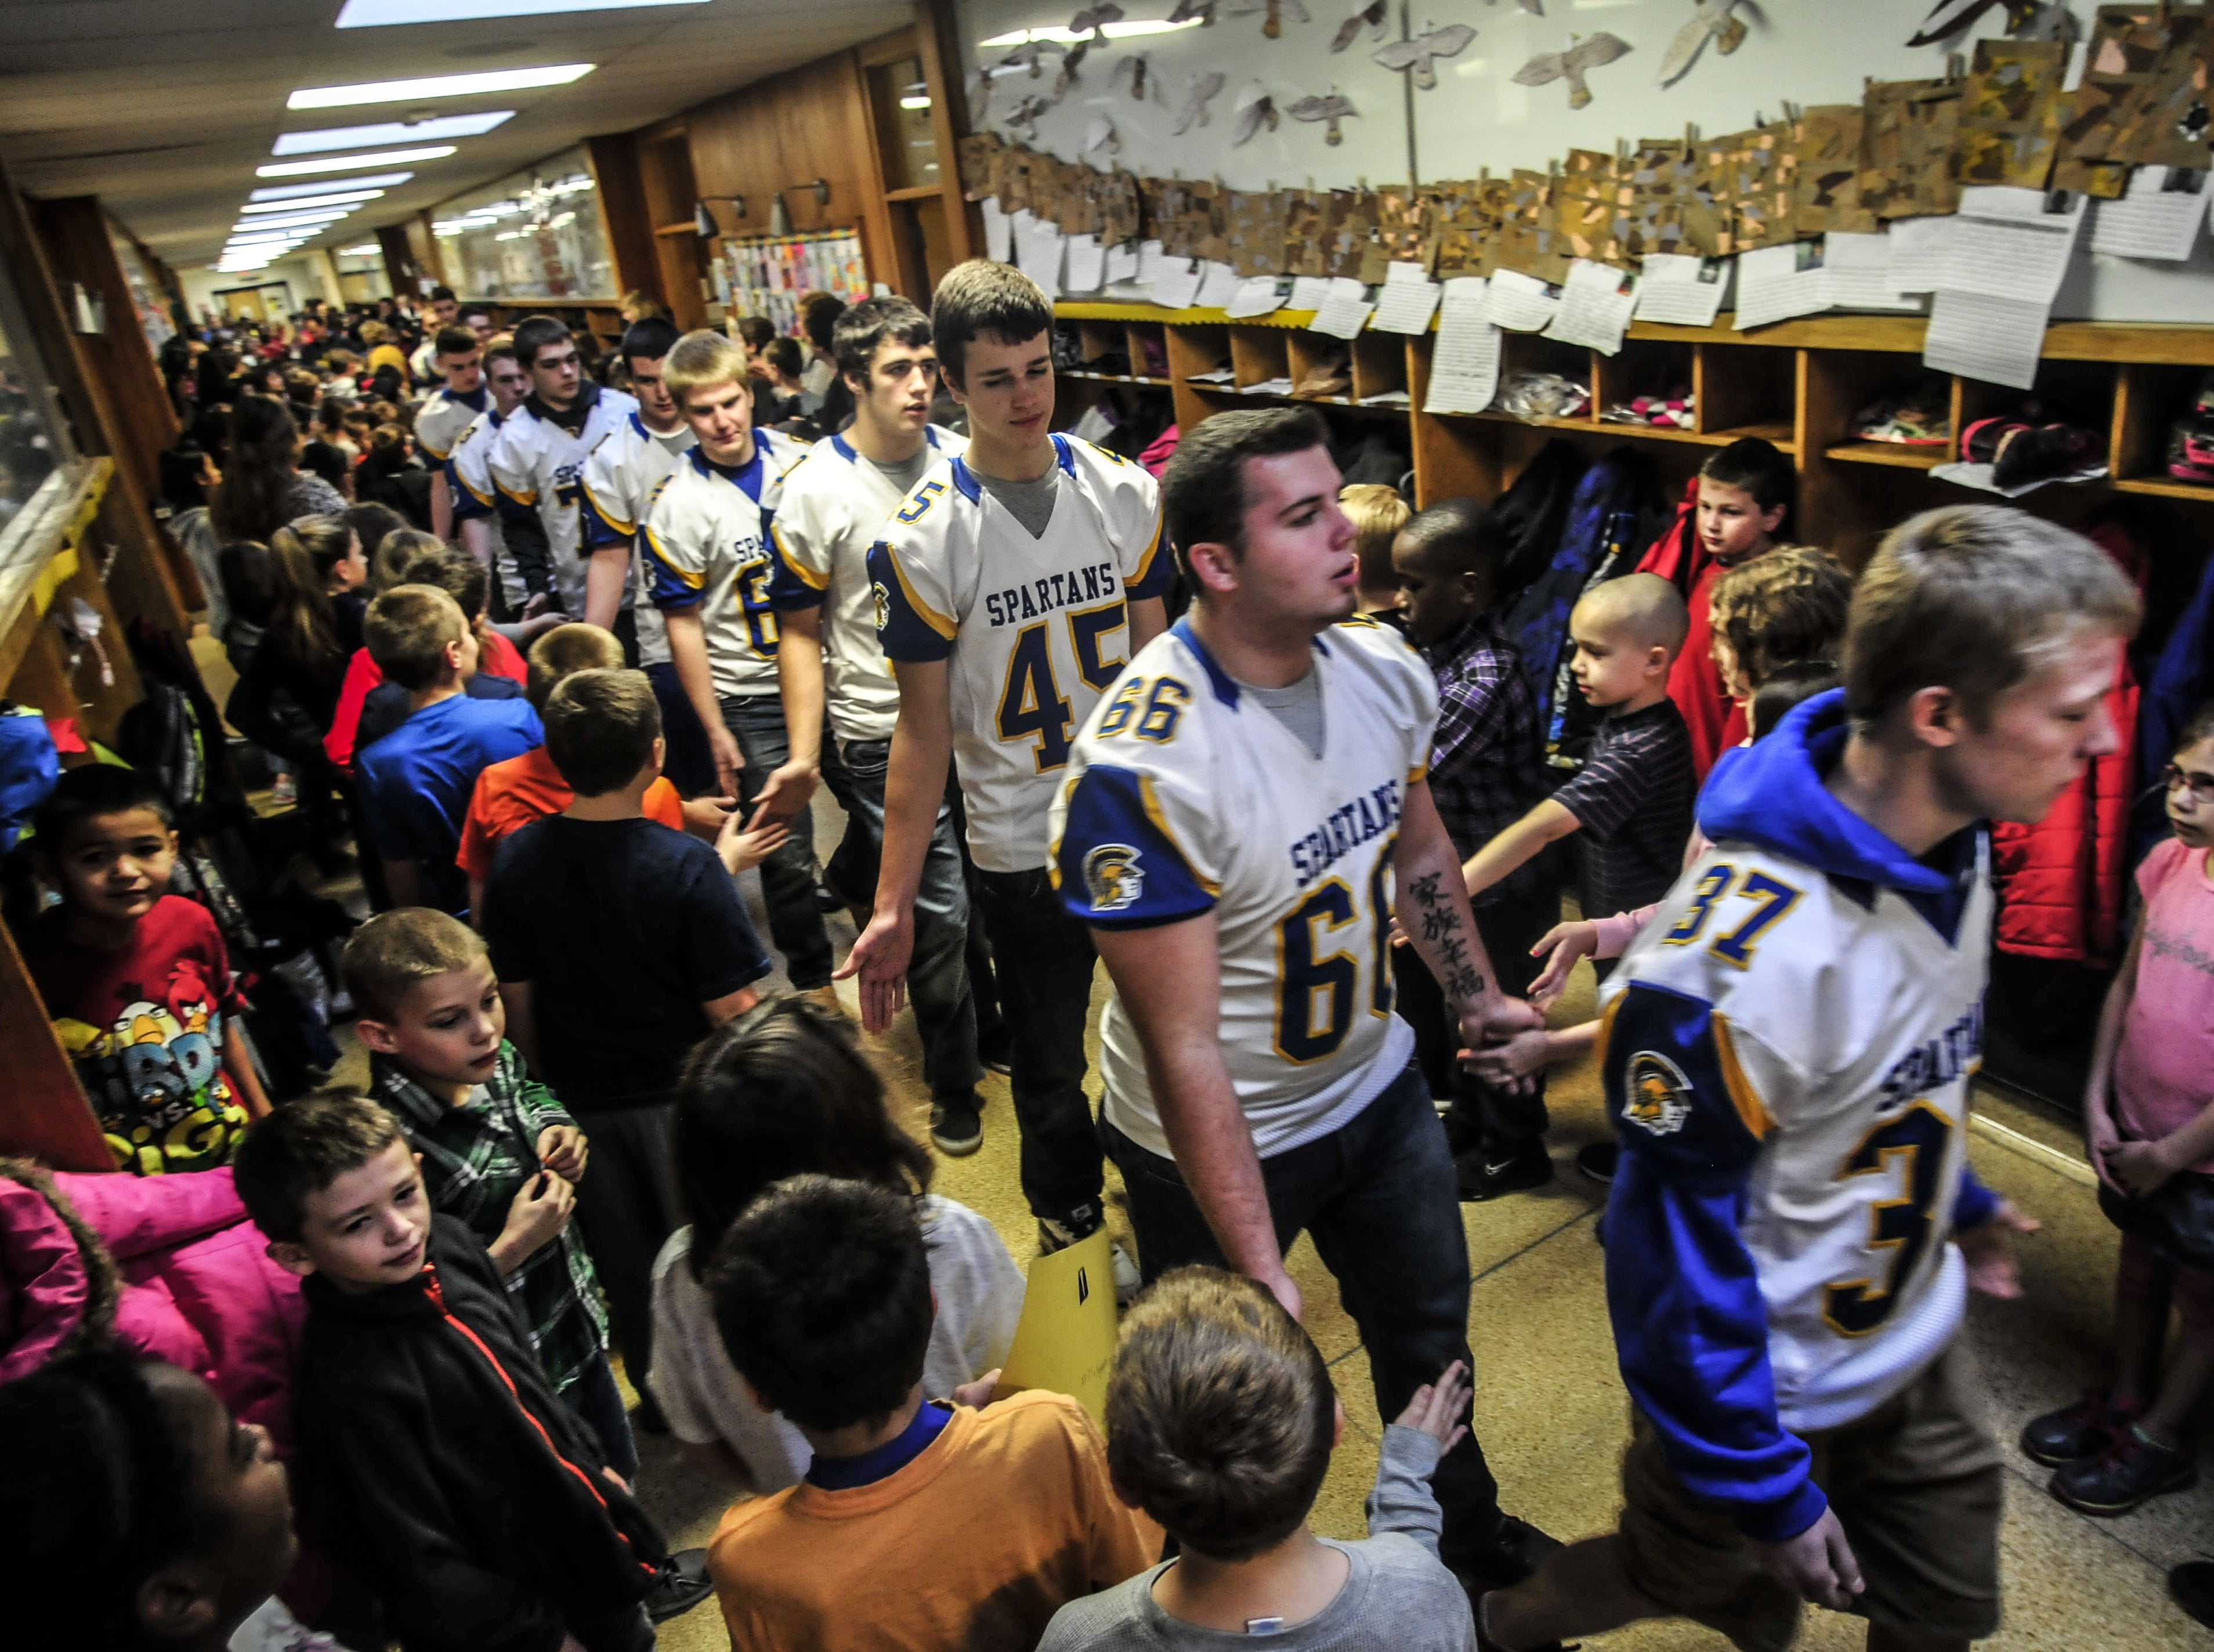 Spartan players went to each of the district schools for a parade through the hallways and classroom visits in recognition of their achievements after winning the Class B state championship for their third consecutive title in 2013.